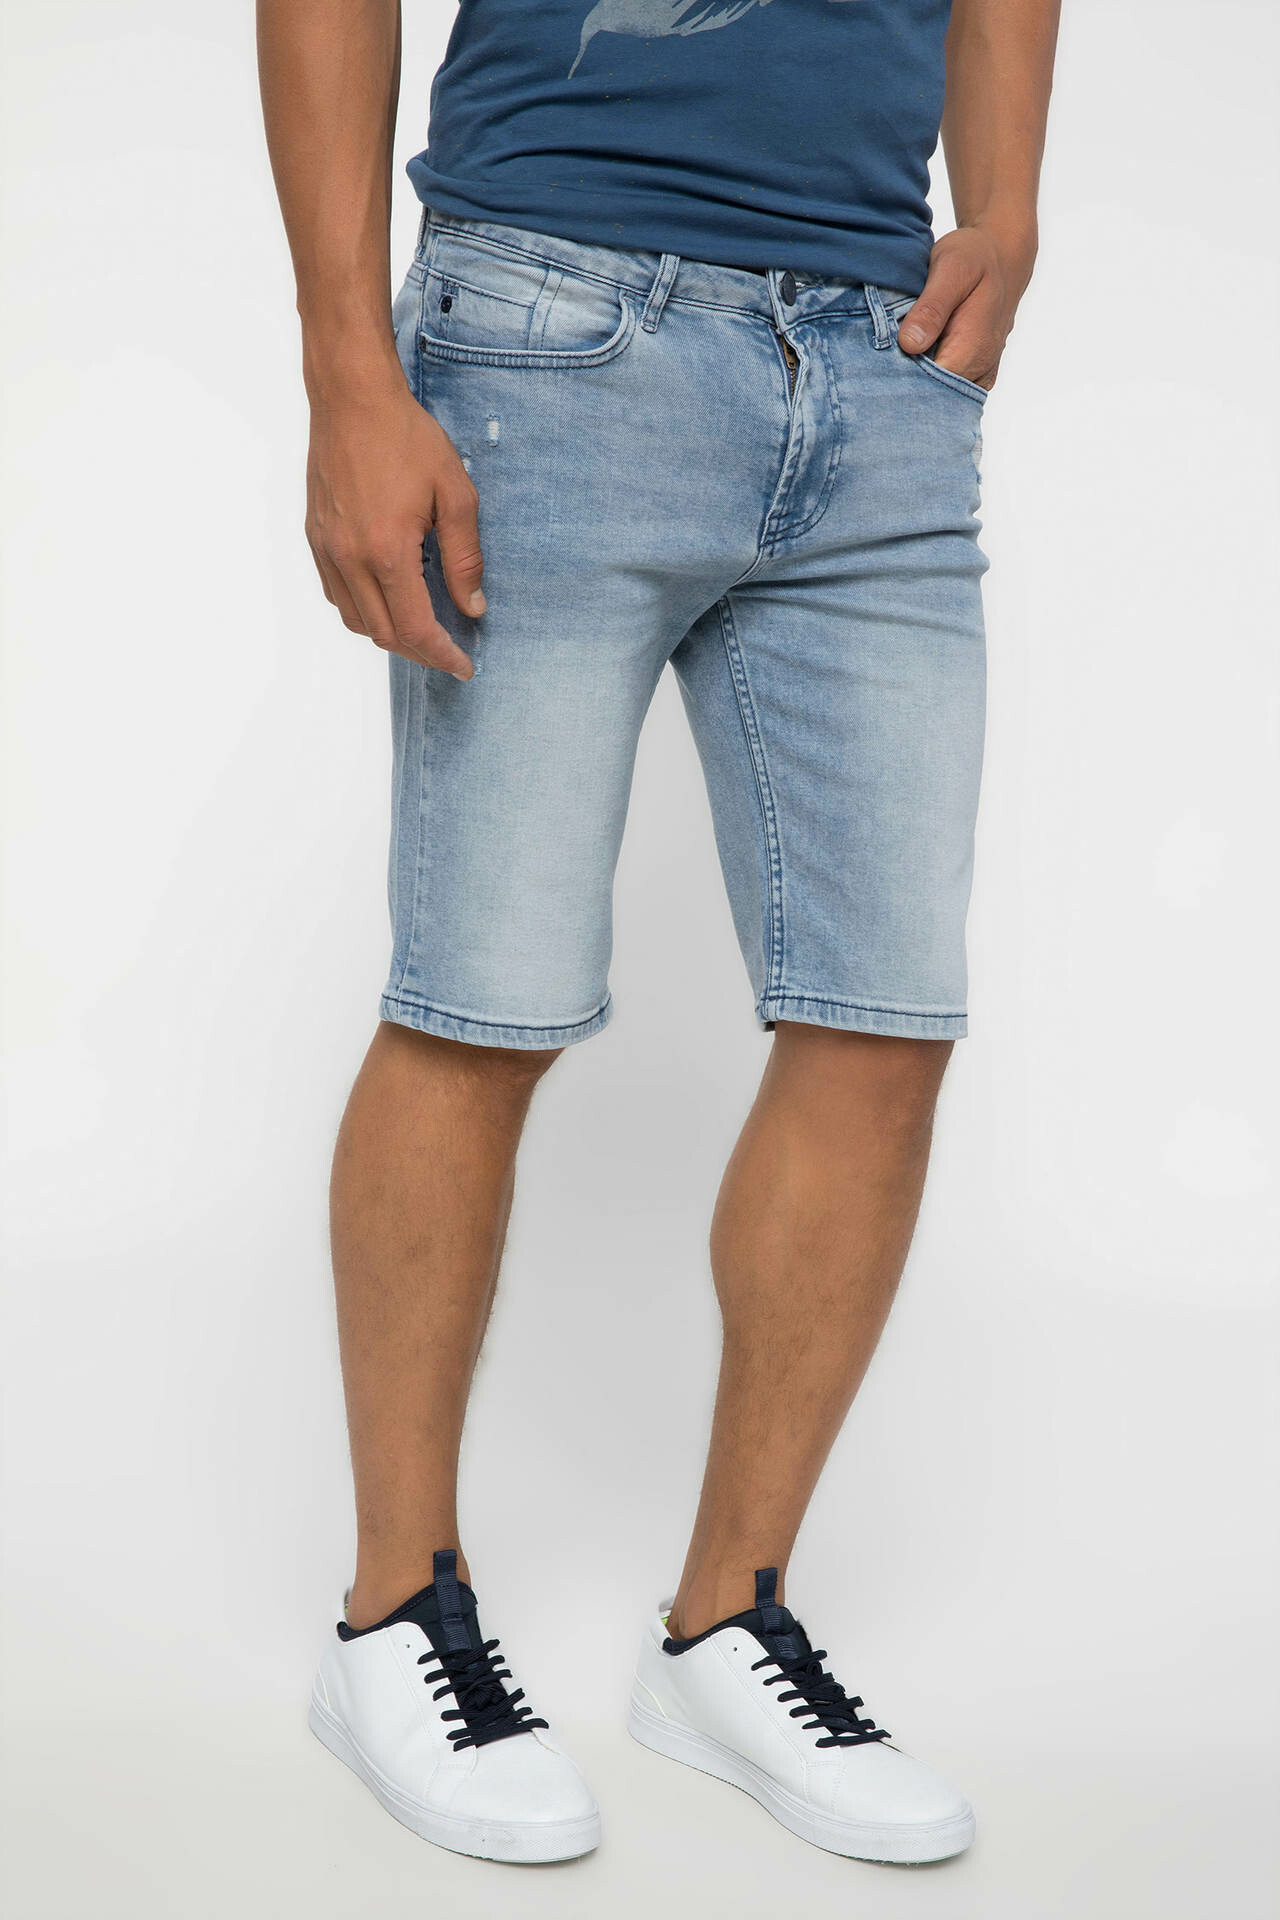 DeFacto Men Summer Light Blue Bleached Denim   Shorts   Straight Casual Denim   Short   Jeans Bermuda I8801AZ18SMNM63